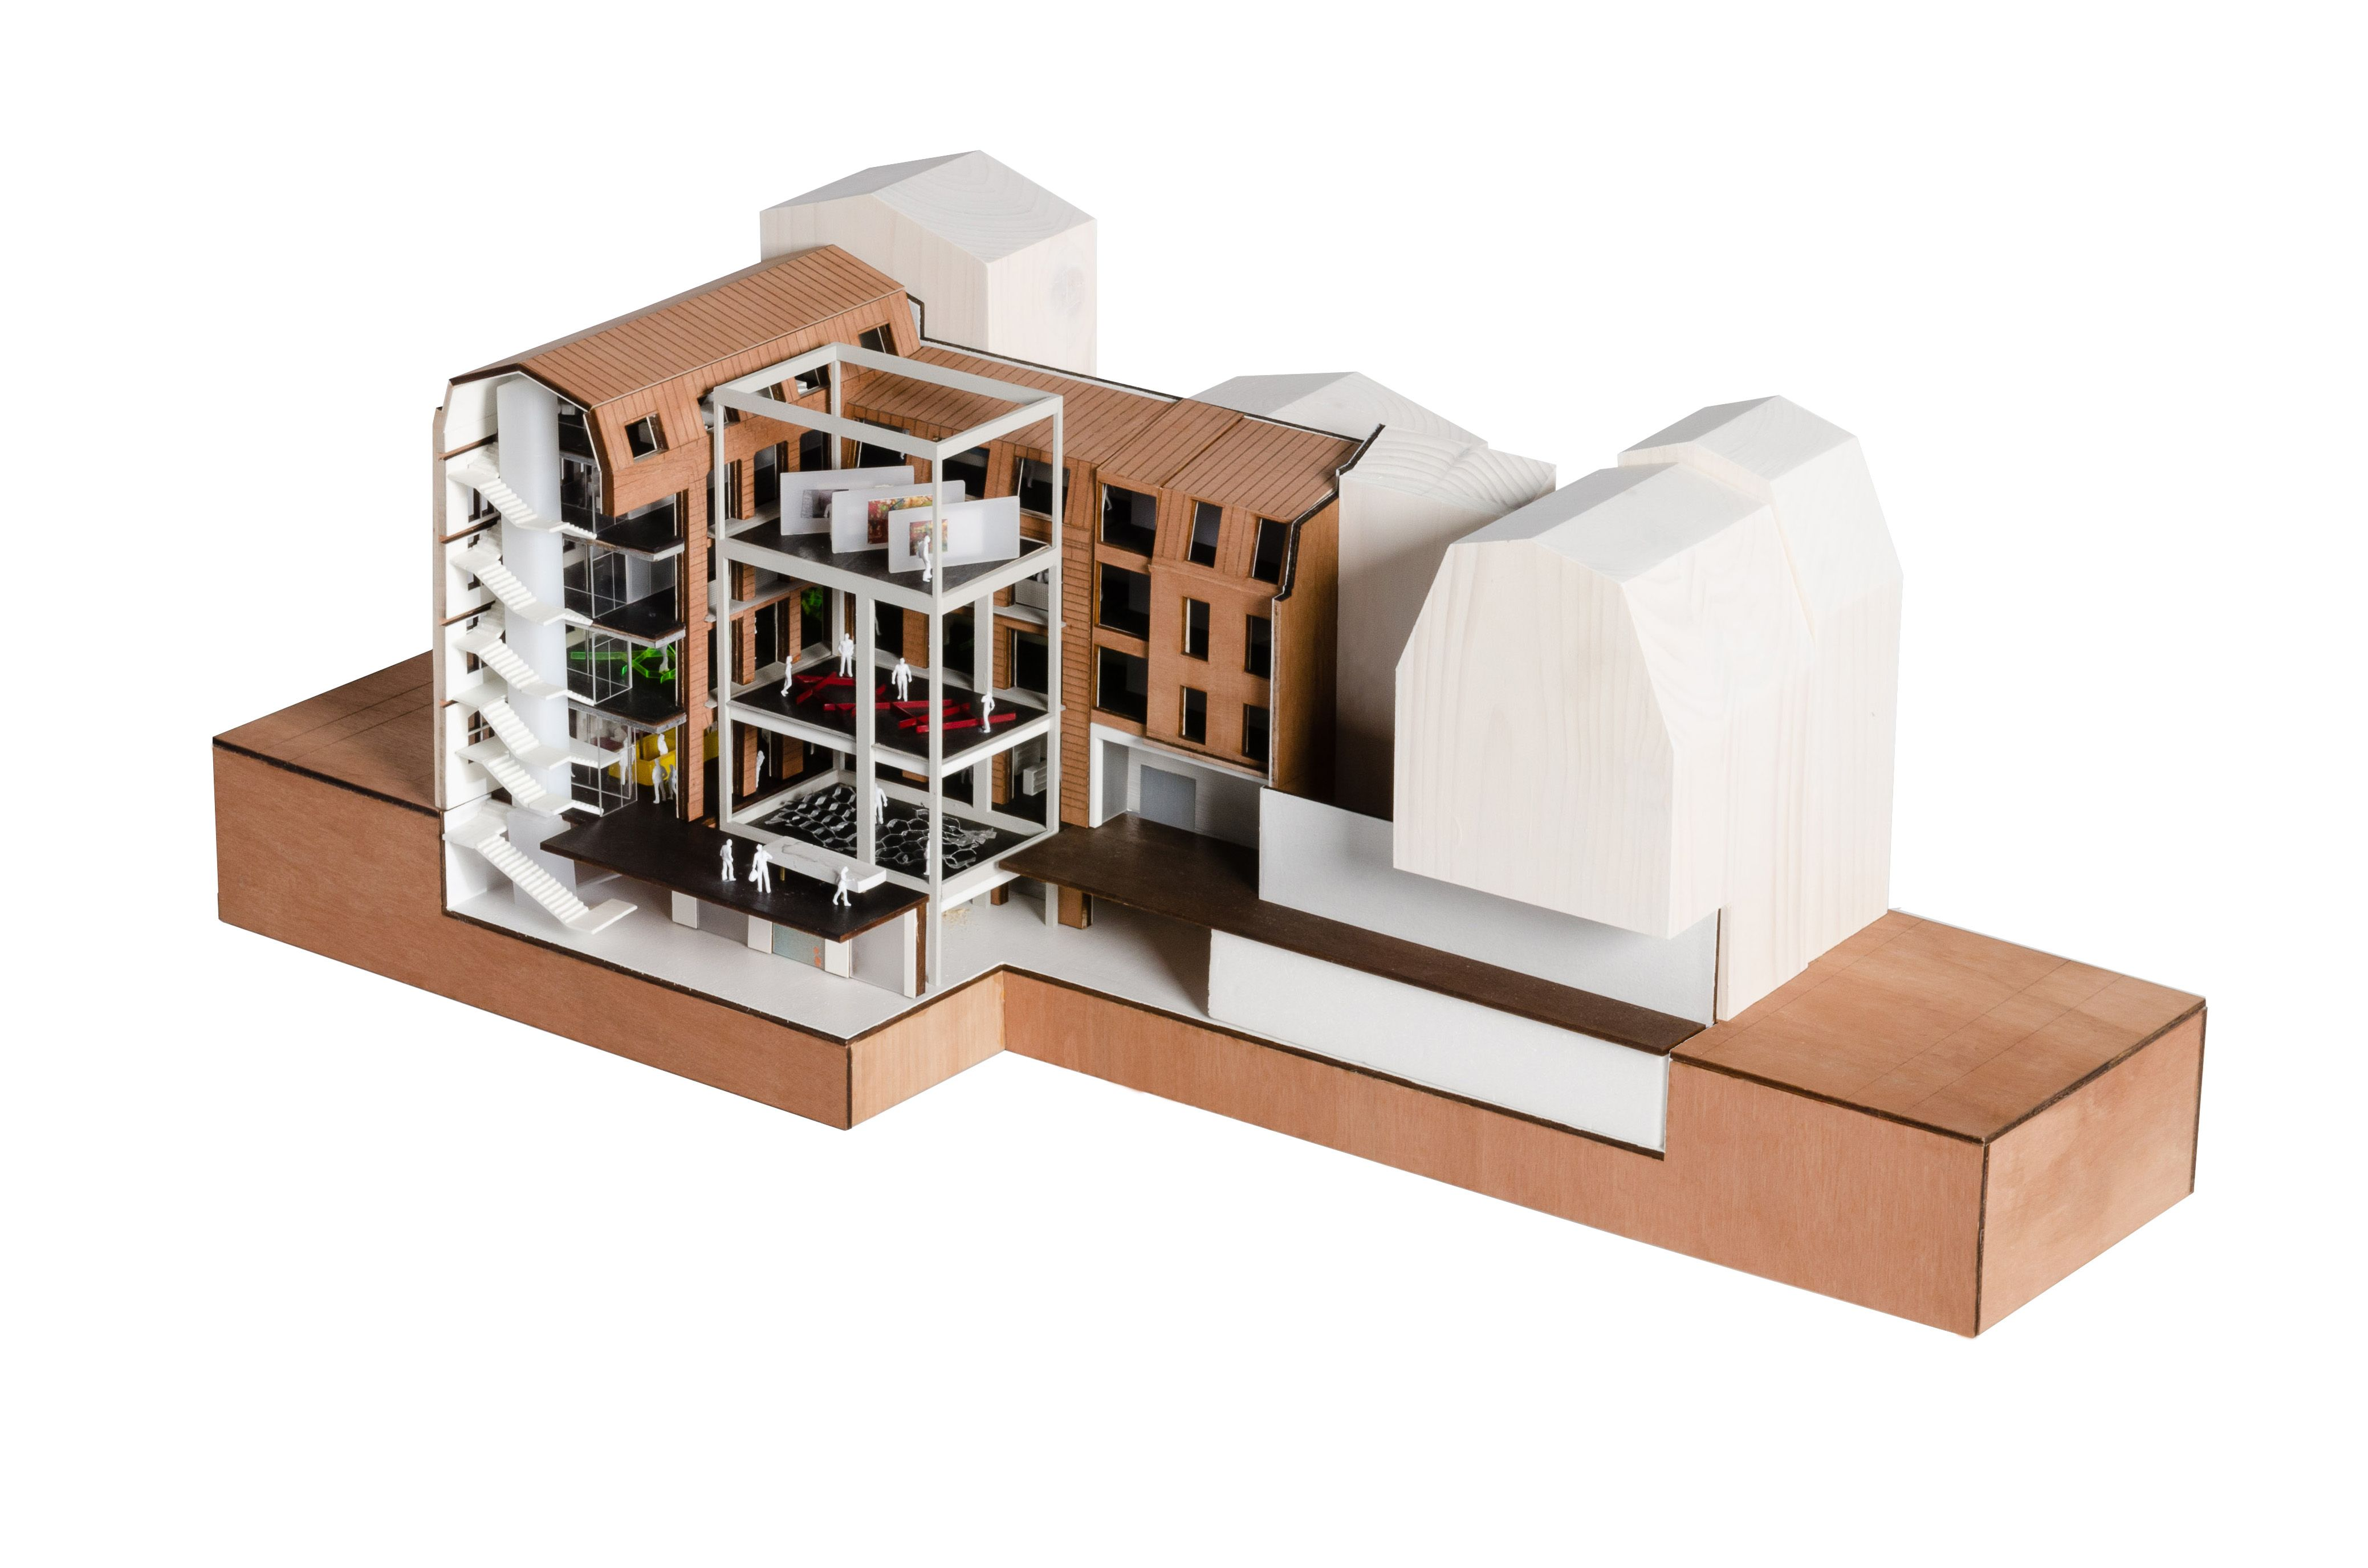 Explore Architectural Models And More!